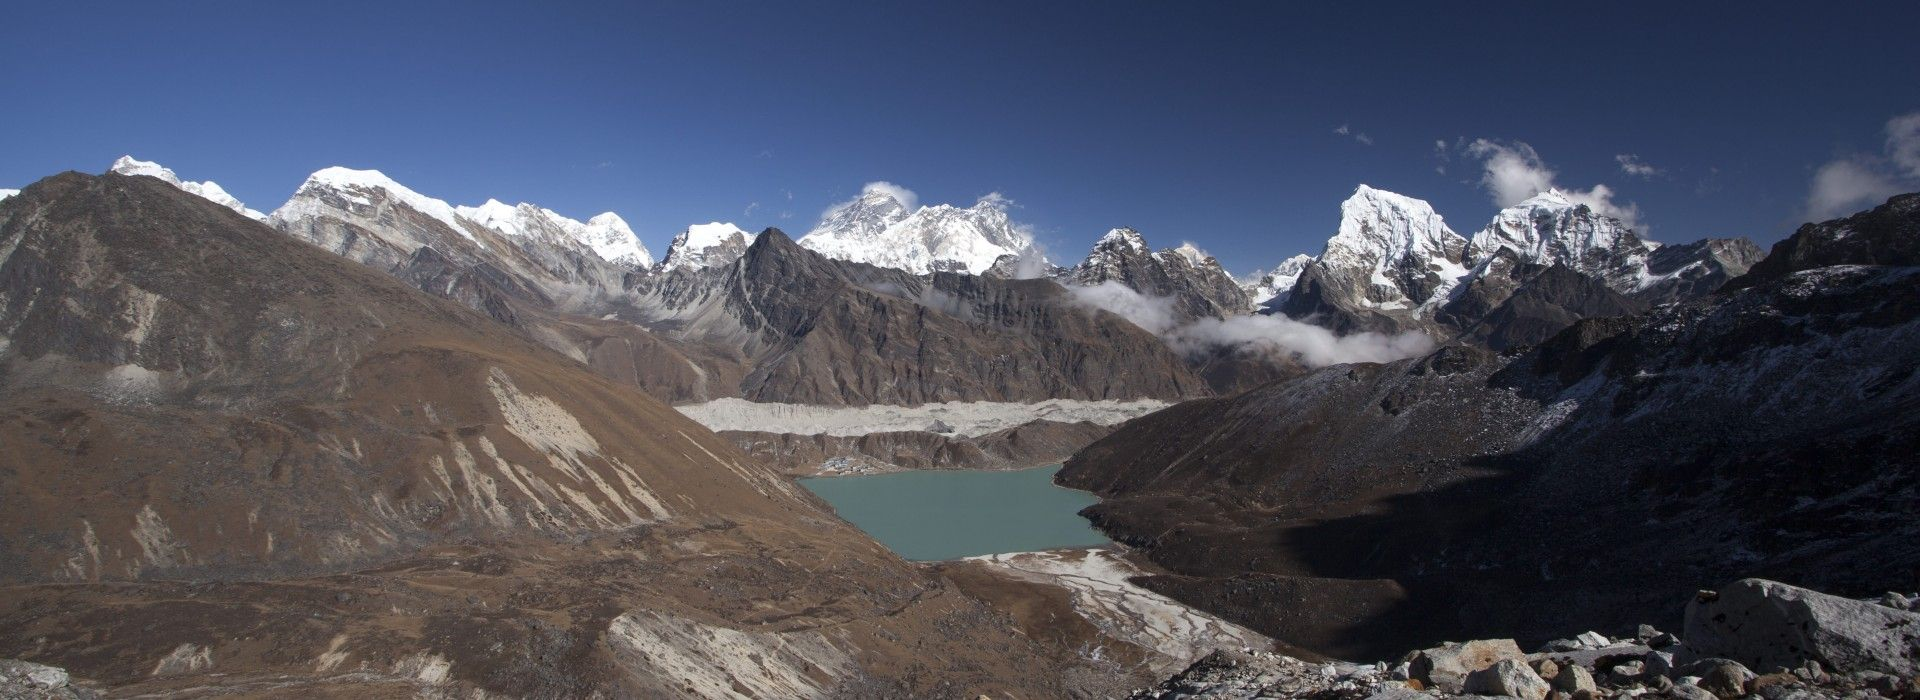 A view from Gokyo Ri - a small peak near Gokyo Village - on the Gokyo Trek